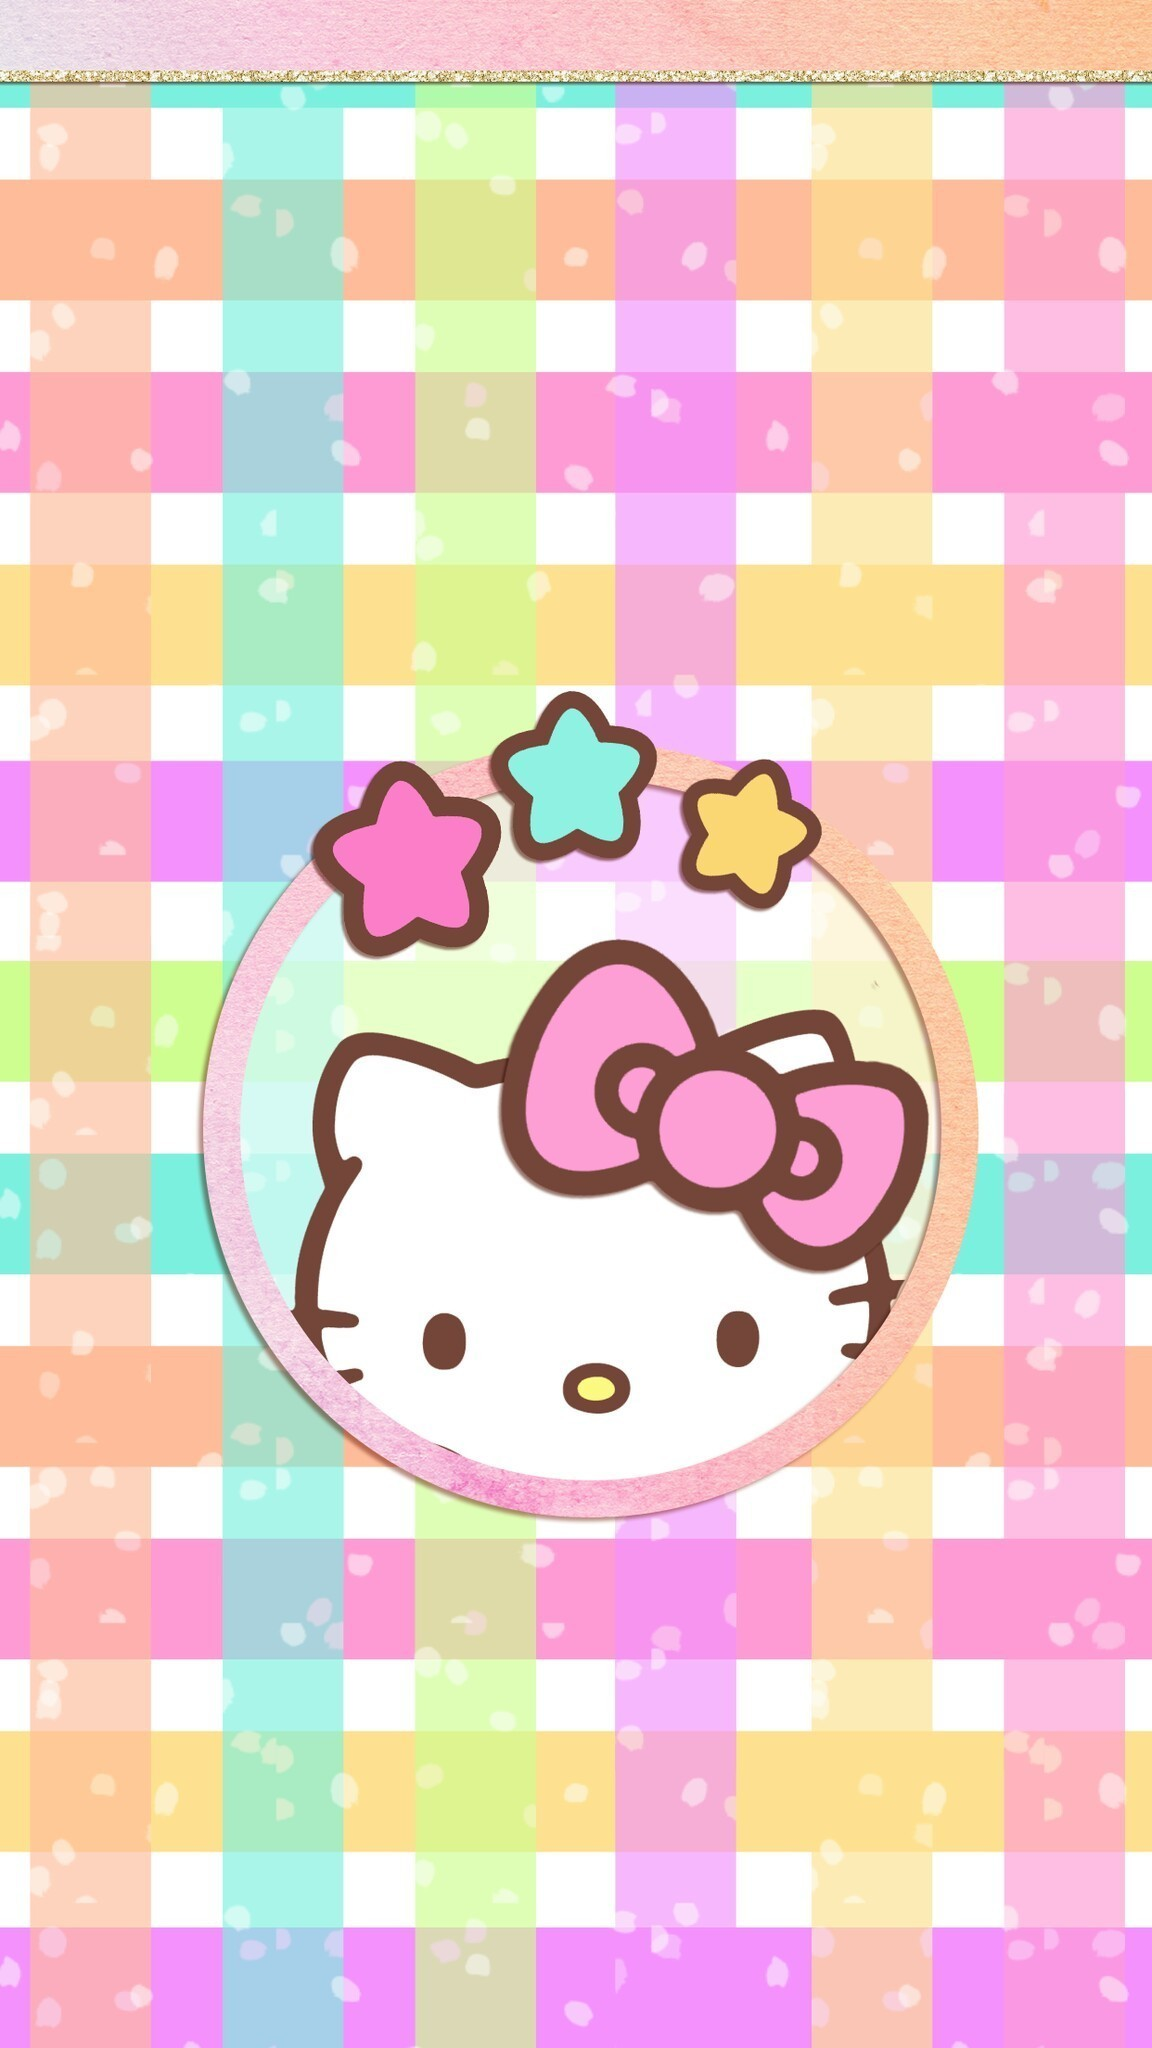 1152x2048 480x800 hello kitty tablet wallpaper gqxmrn9 - A Wallpaper.Com